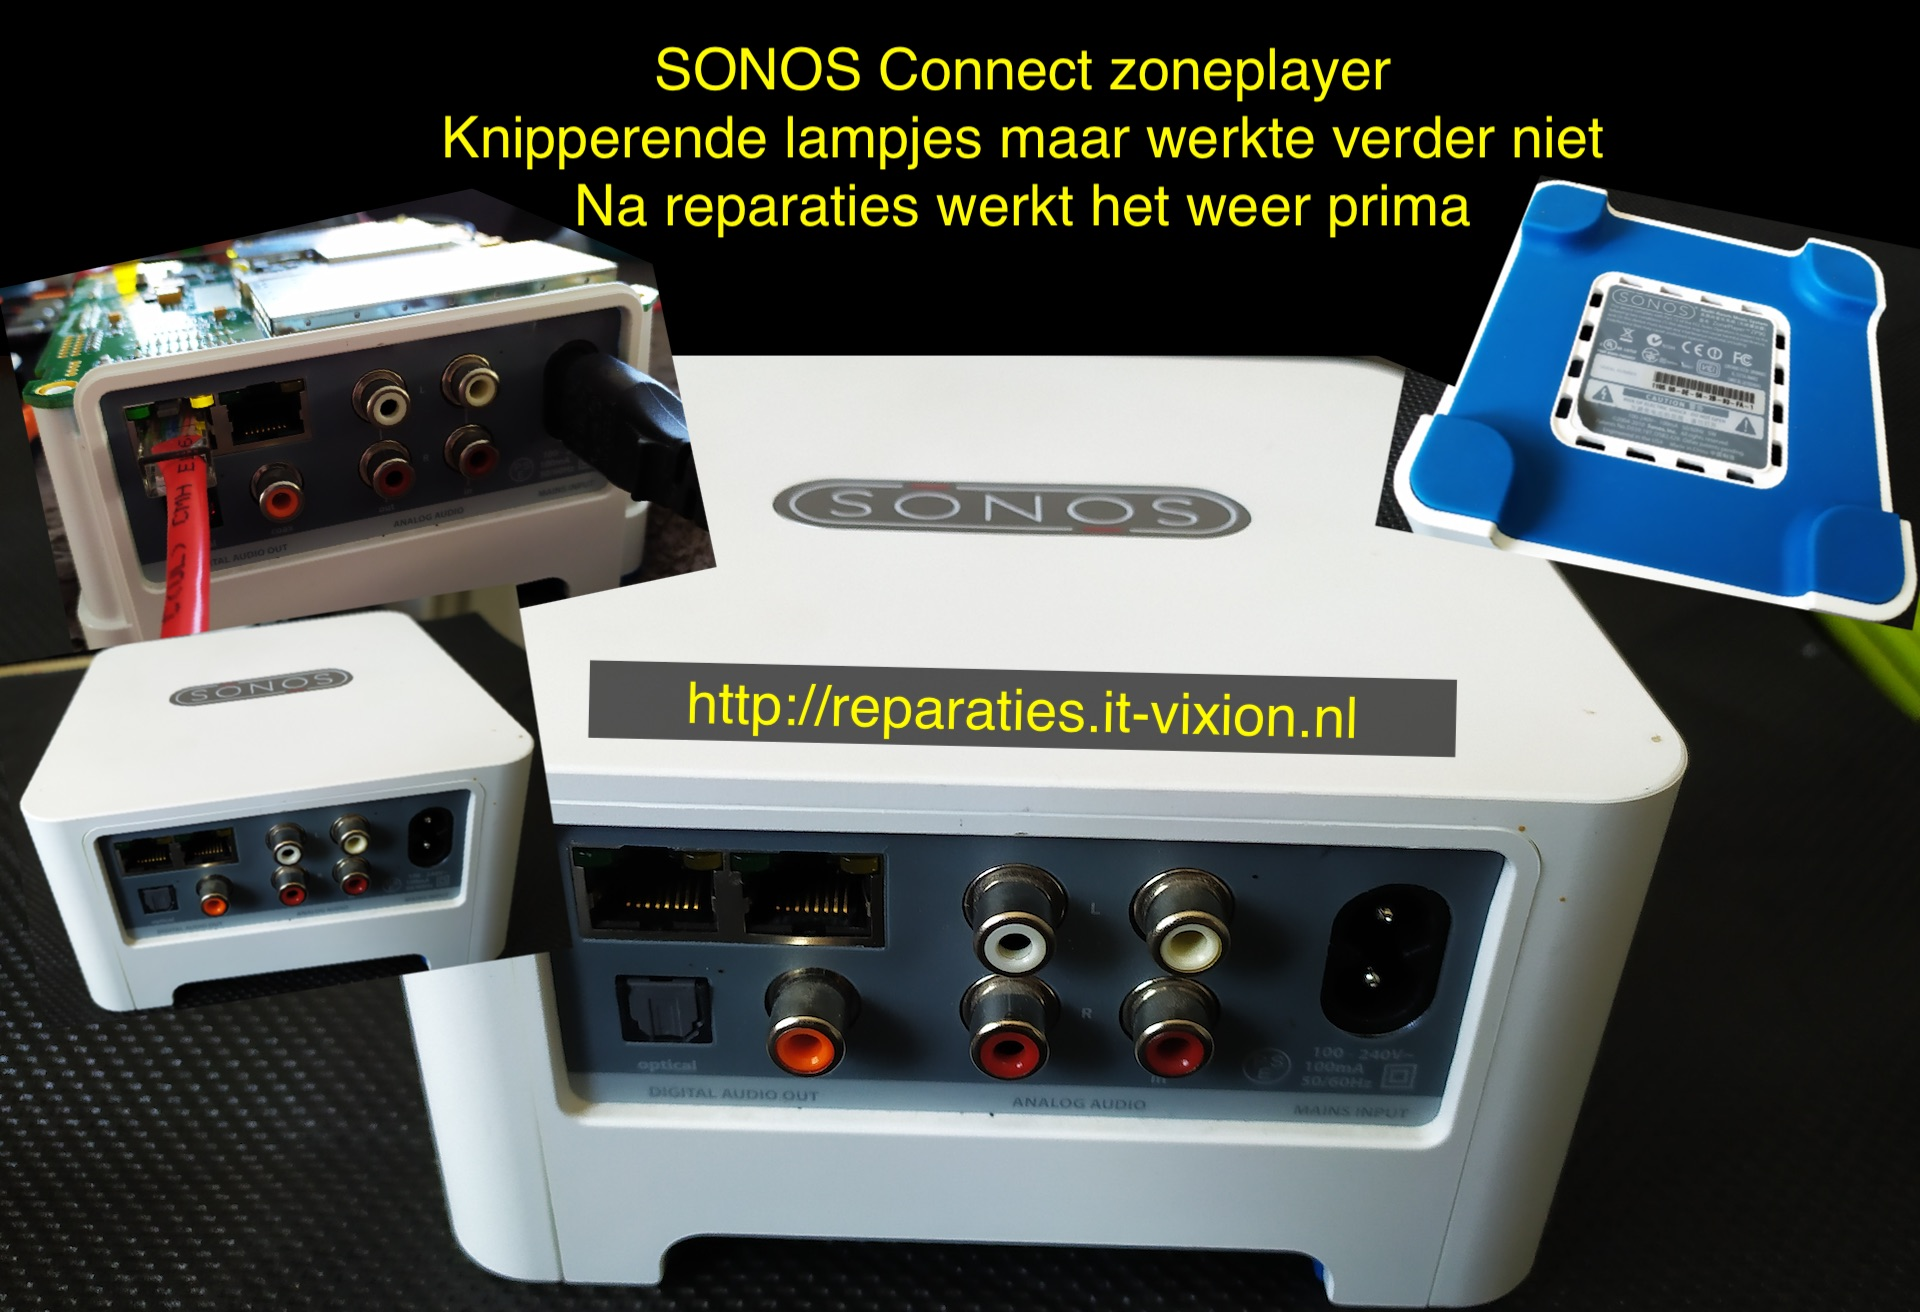 SONOS Connect zoneplayer